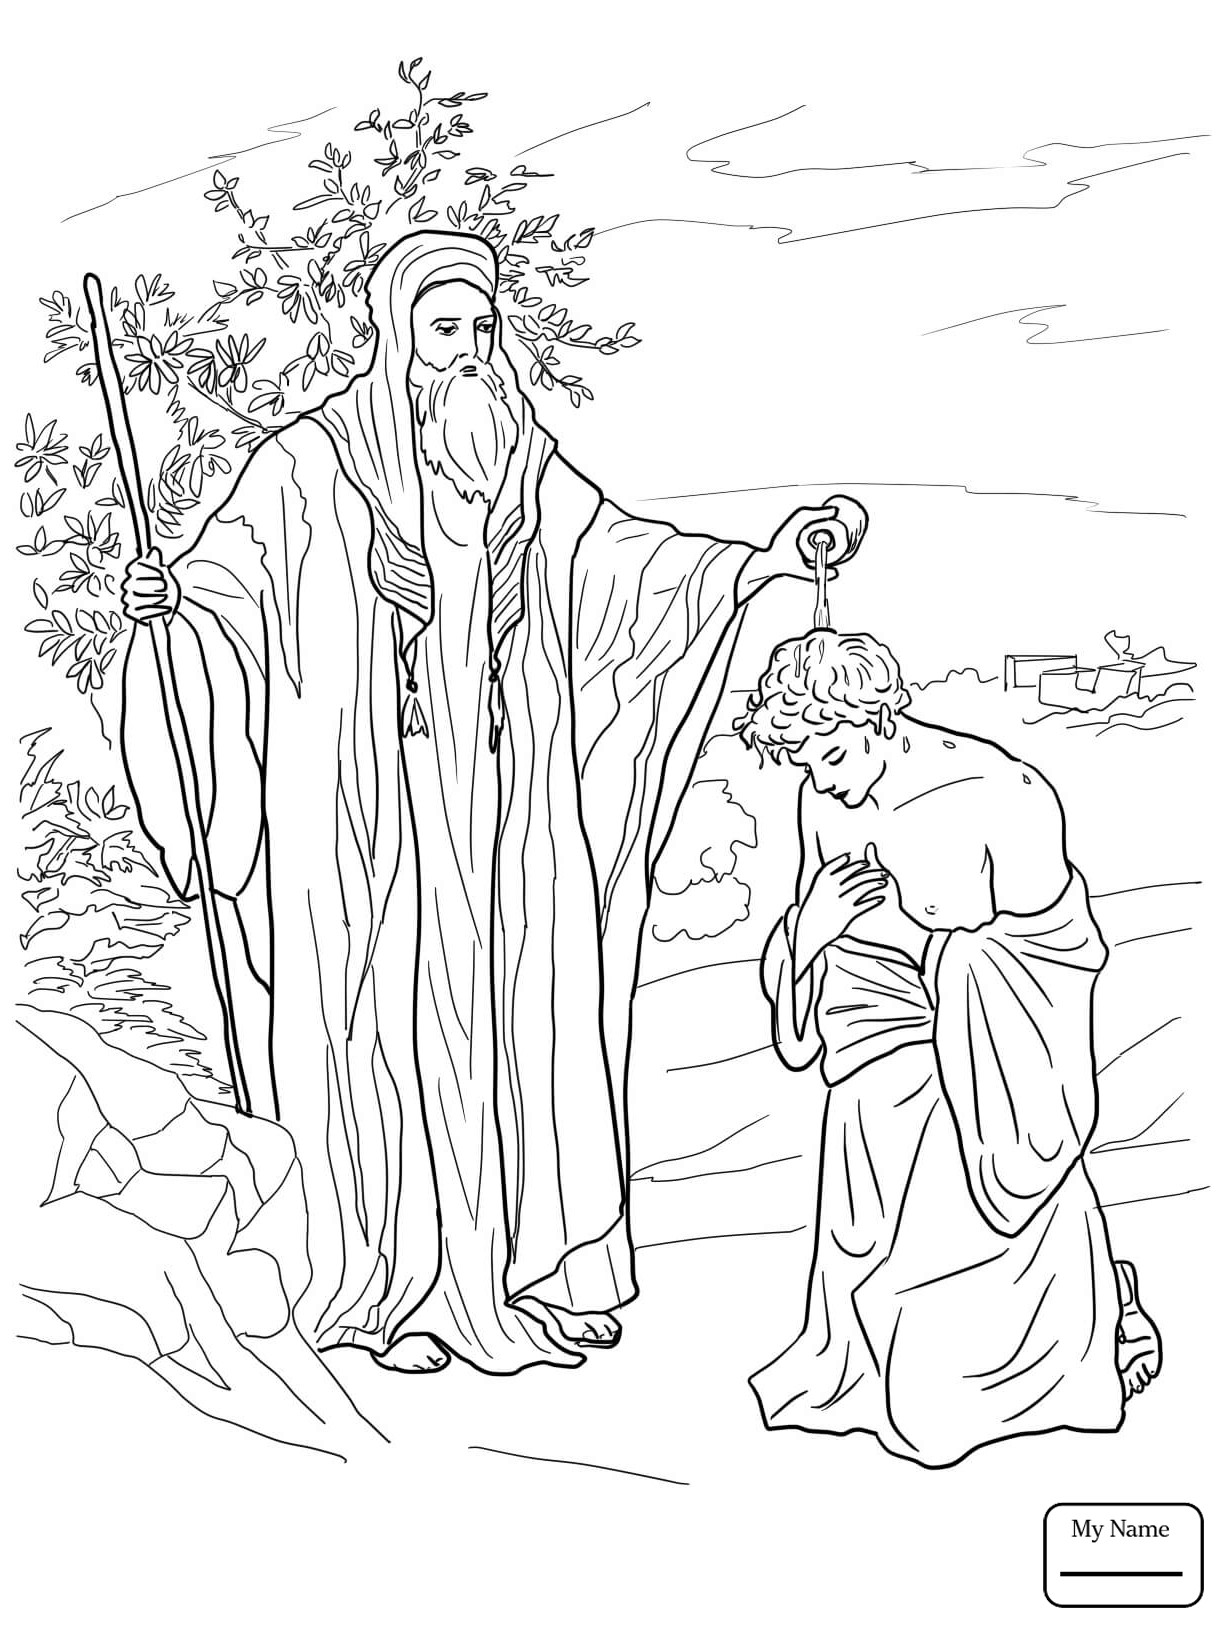 bible coloring pages king saul saul disobeys god coloring page free printable coloring king bible coloring pages saul